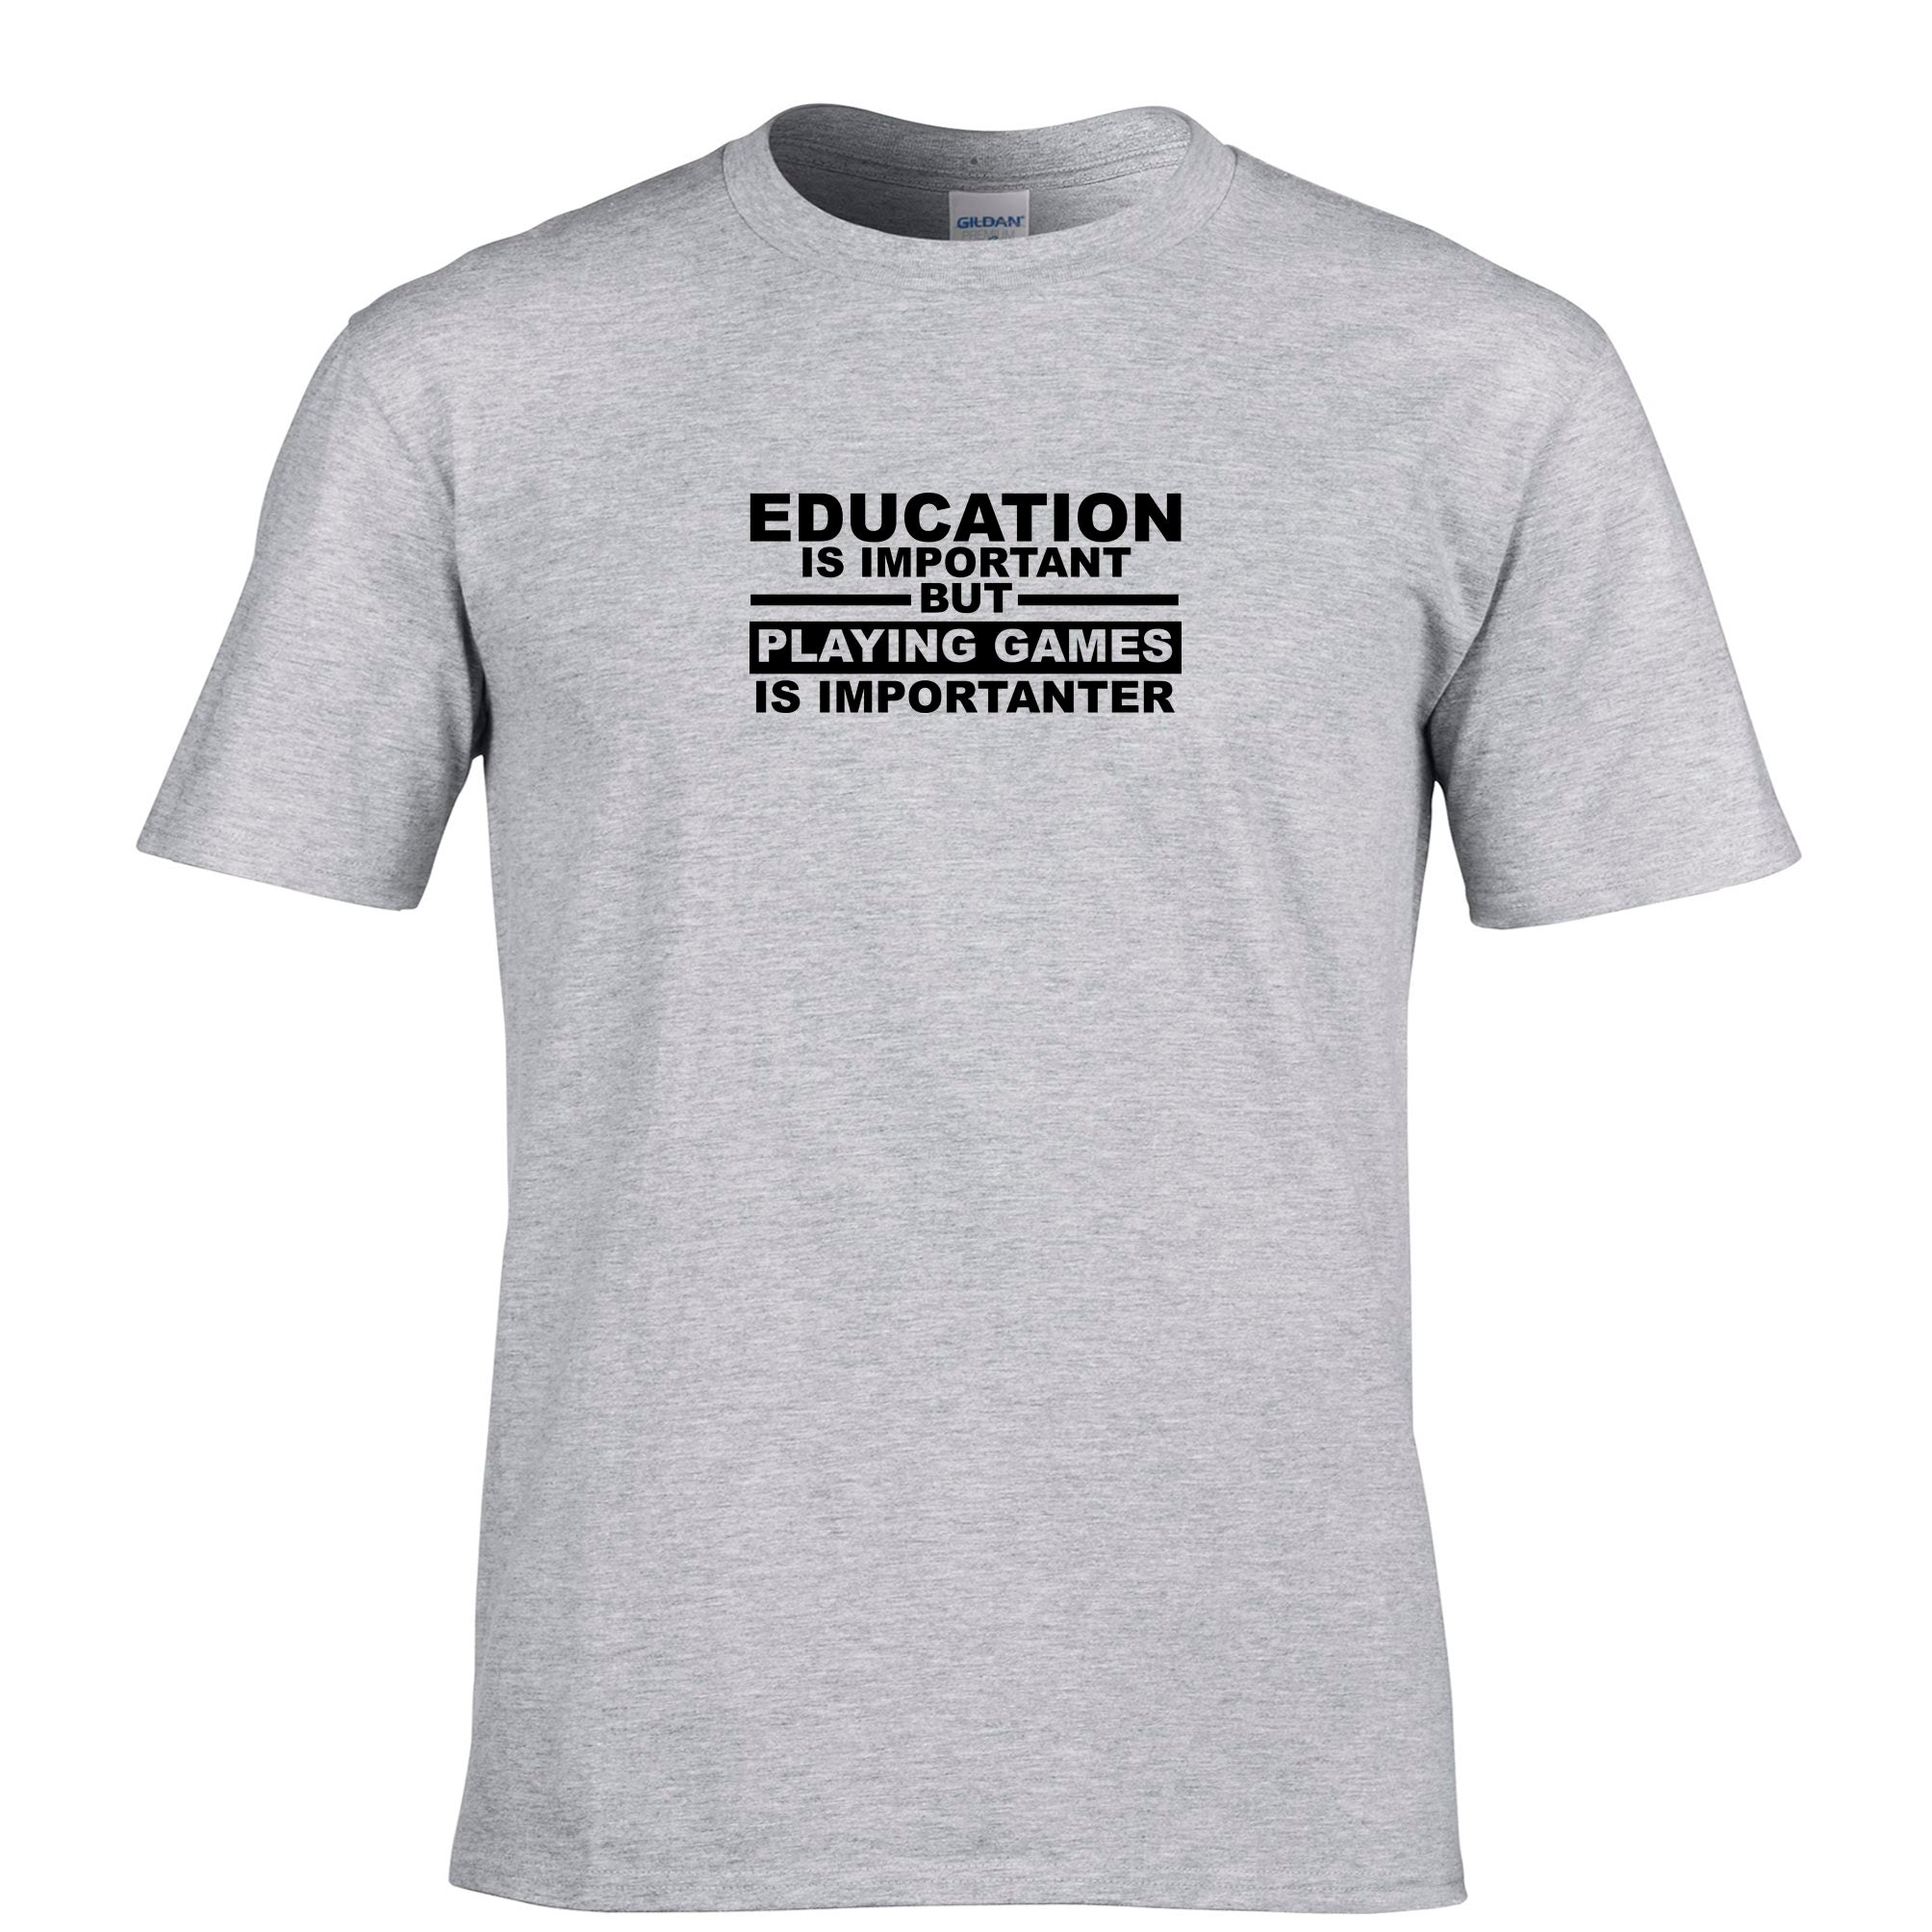 Mens Education T Shirt Playing Games is Importanter Tee